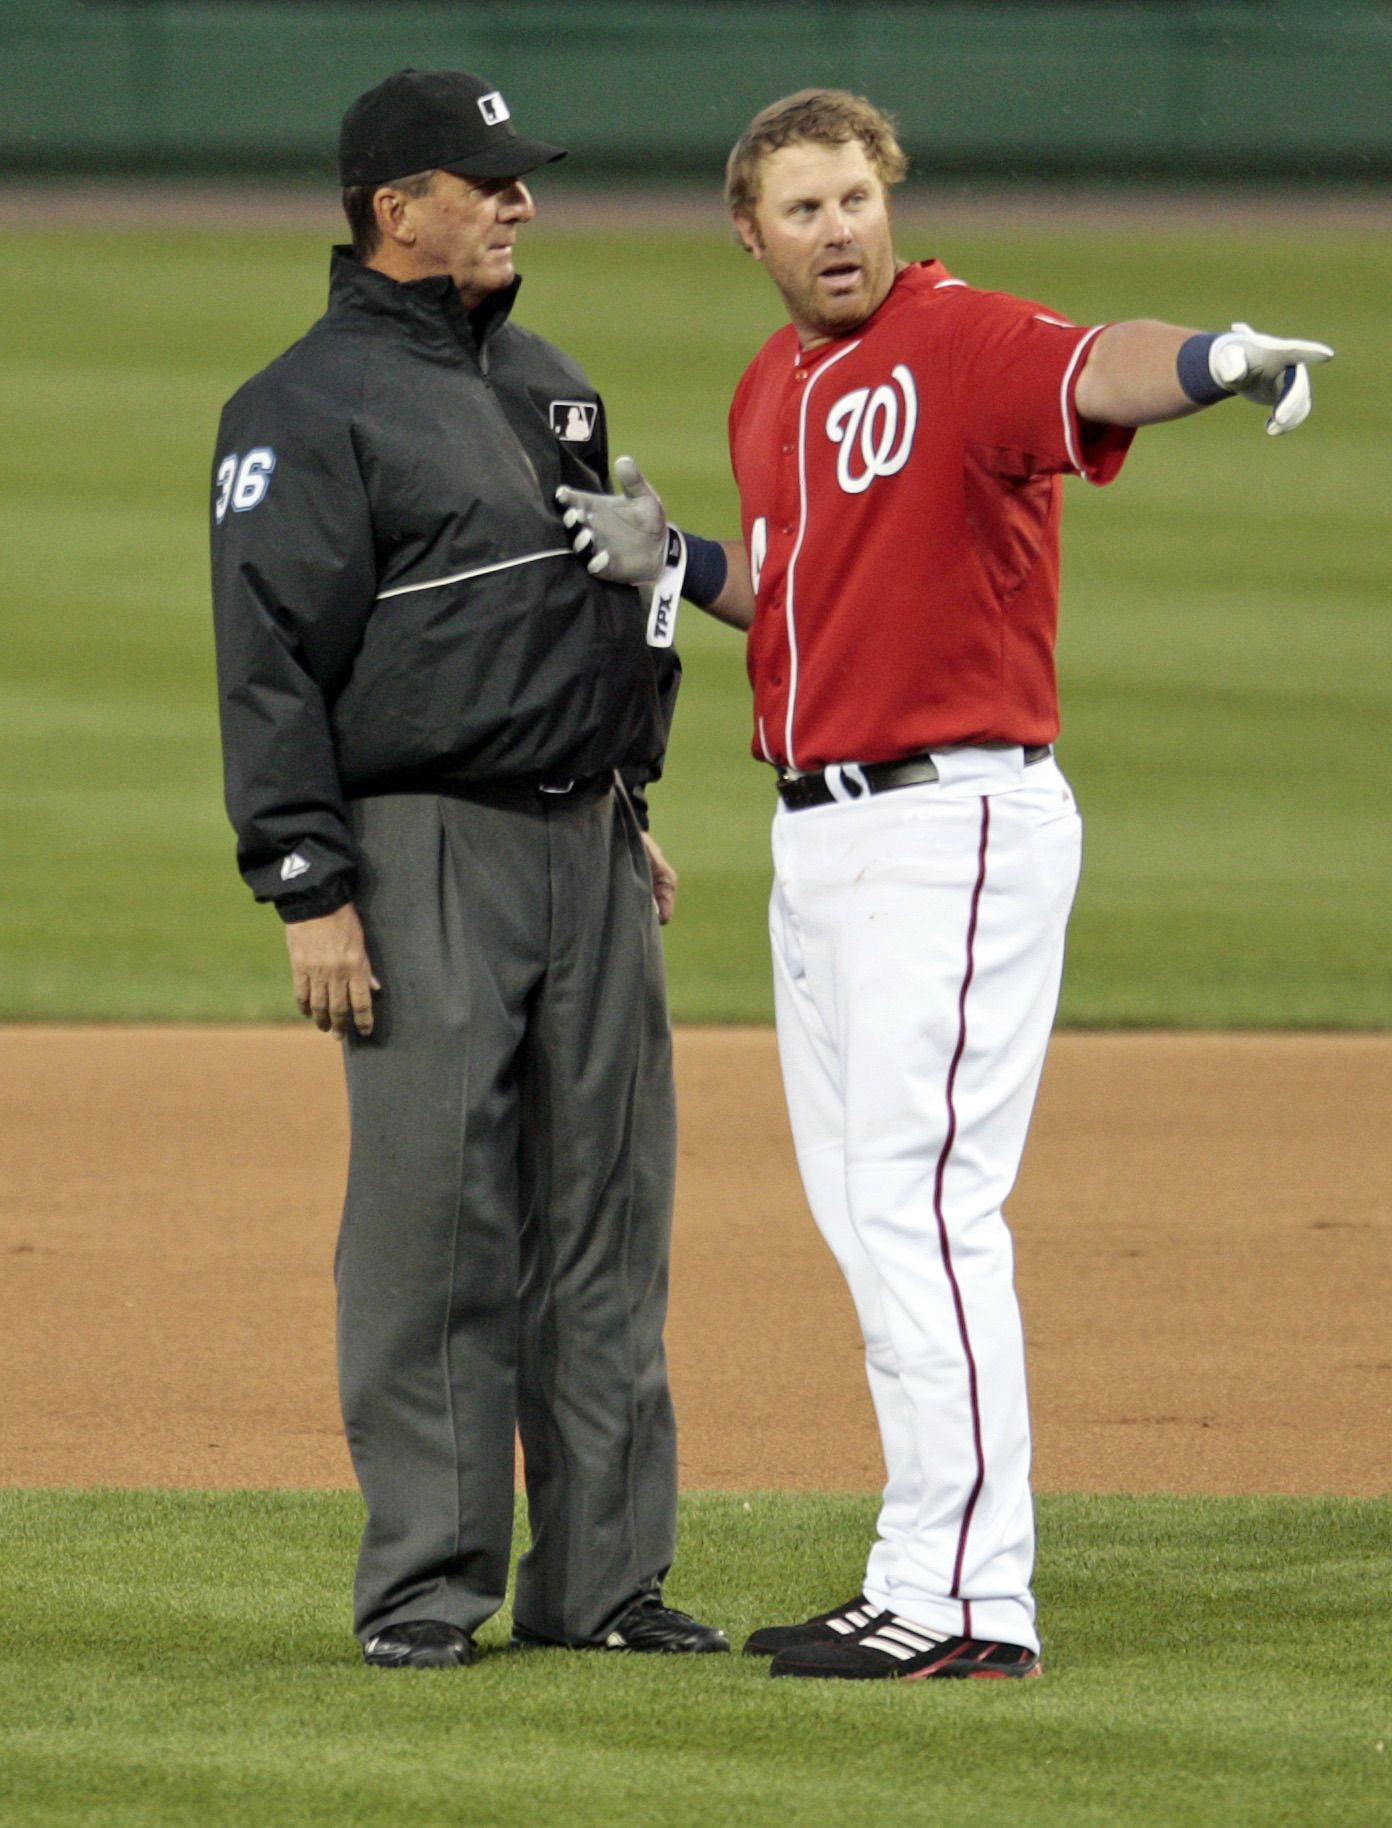 Washington Nationals' Adam Dunn, right, argues with first base umpire Tim McClelland on a called strike on Friday, April 16, 2010, in Washington. Dunn was ejected.